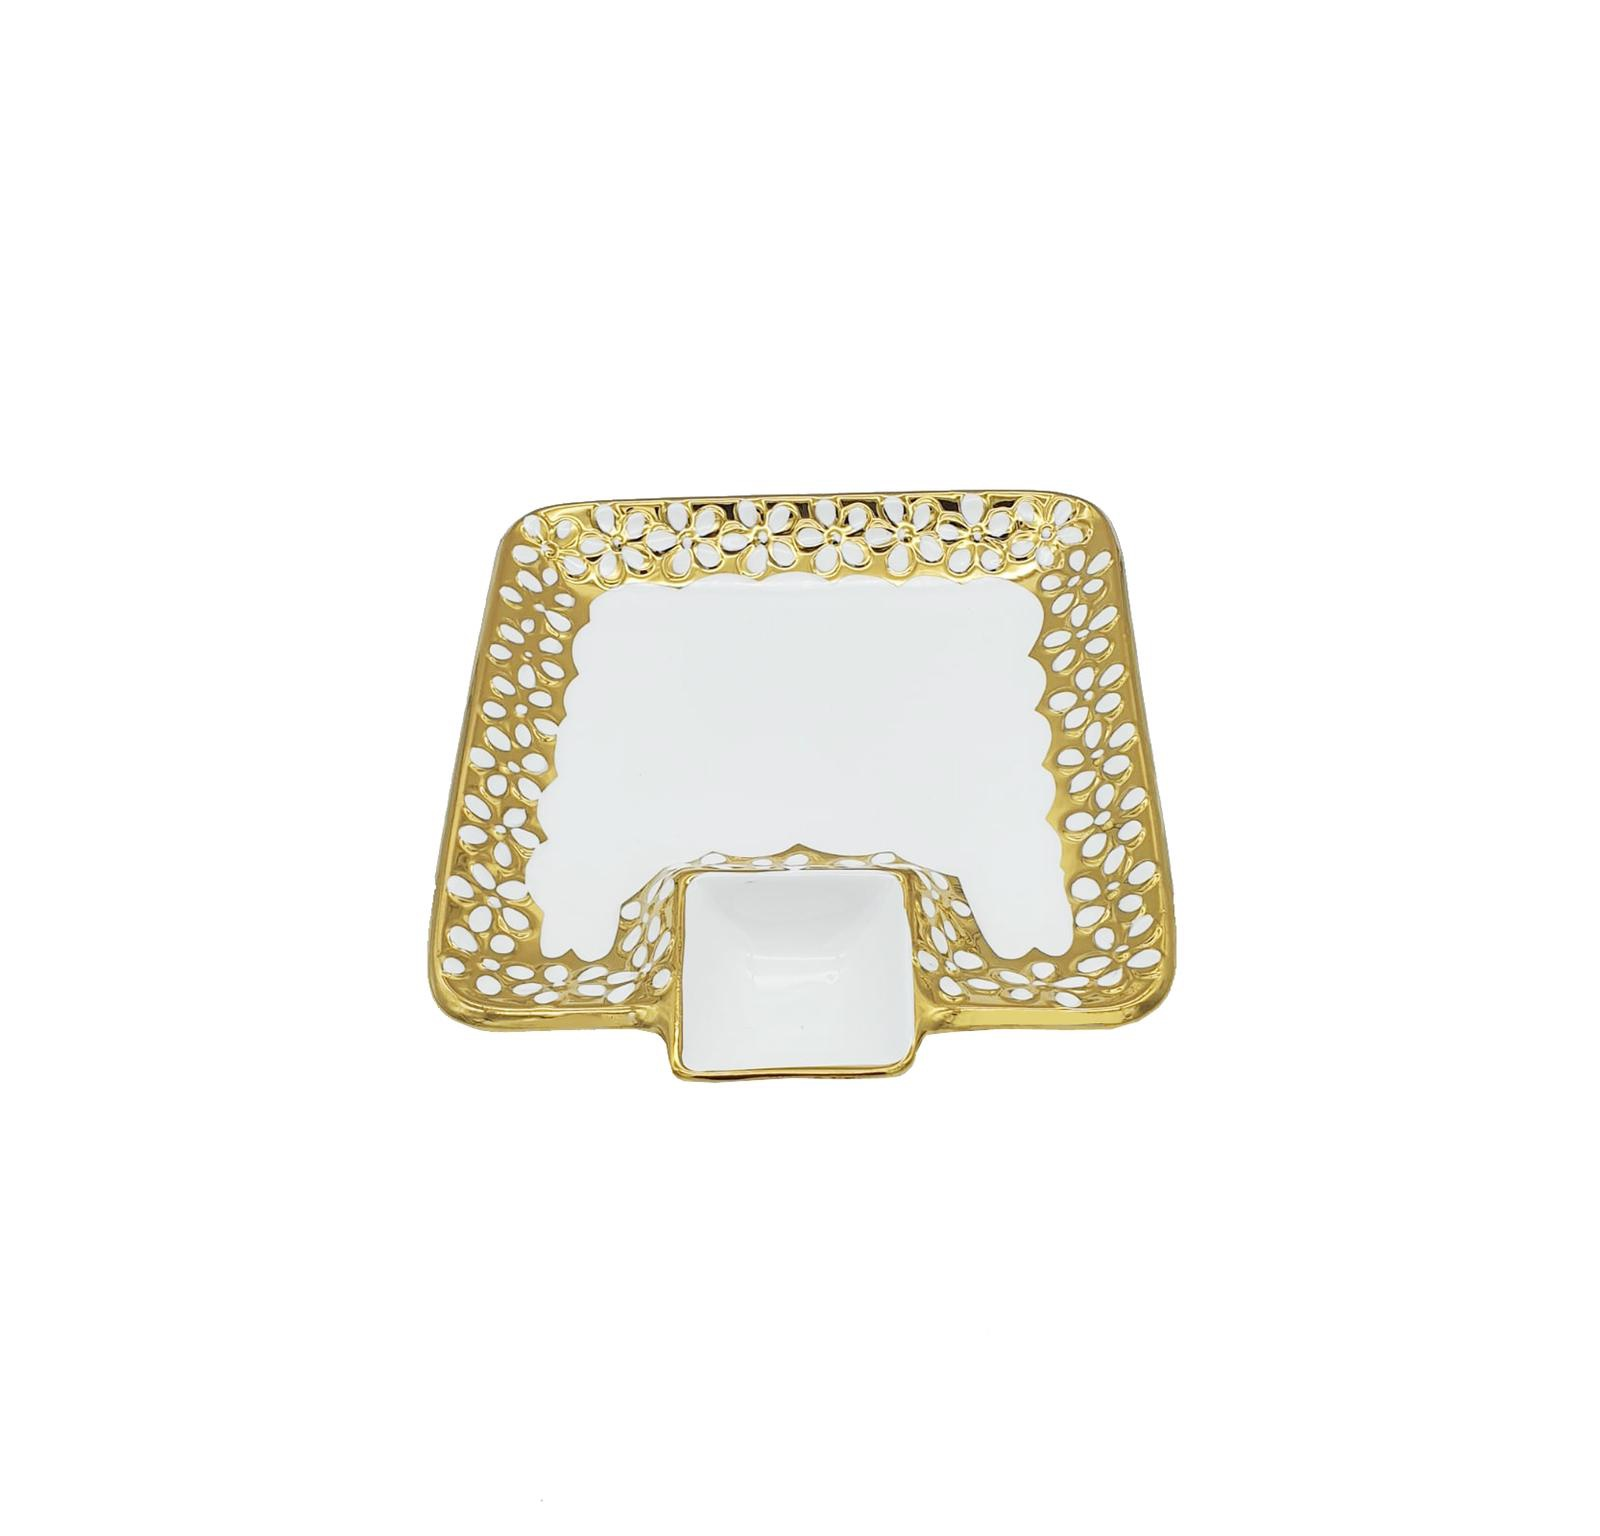 Buy White & Gold Rectangle Serving Plate